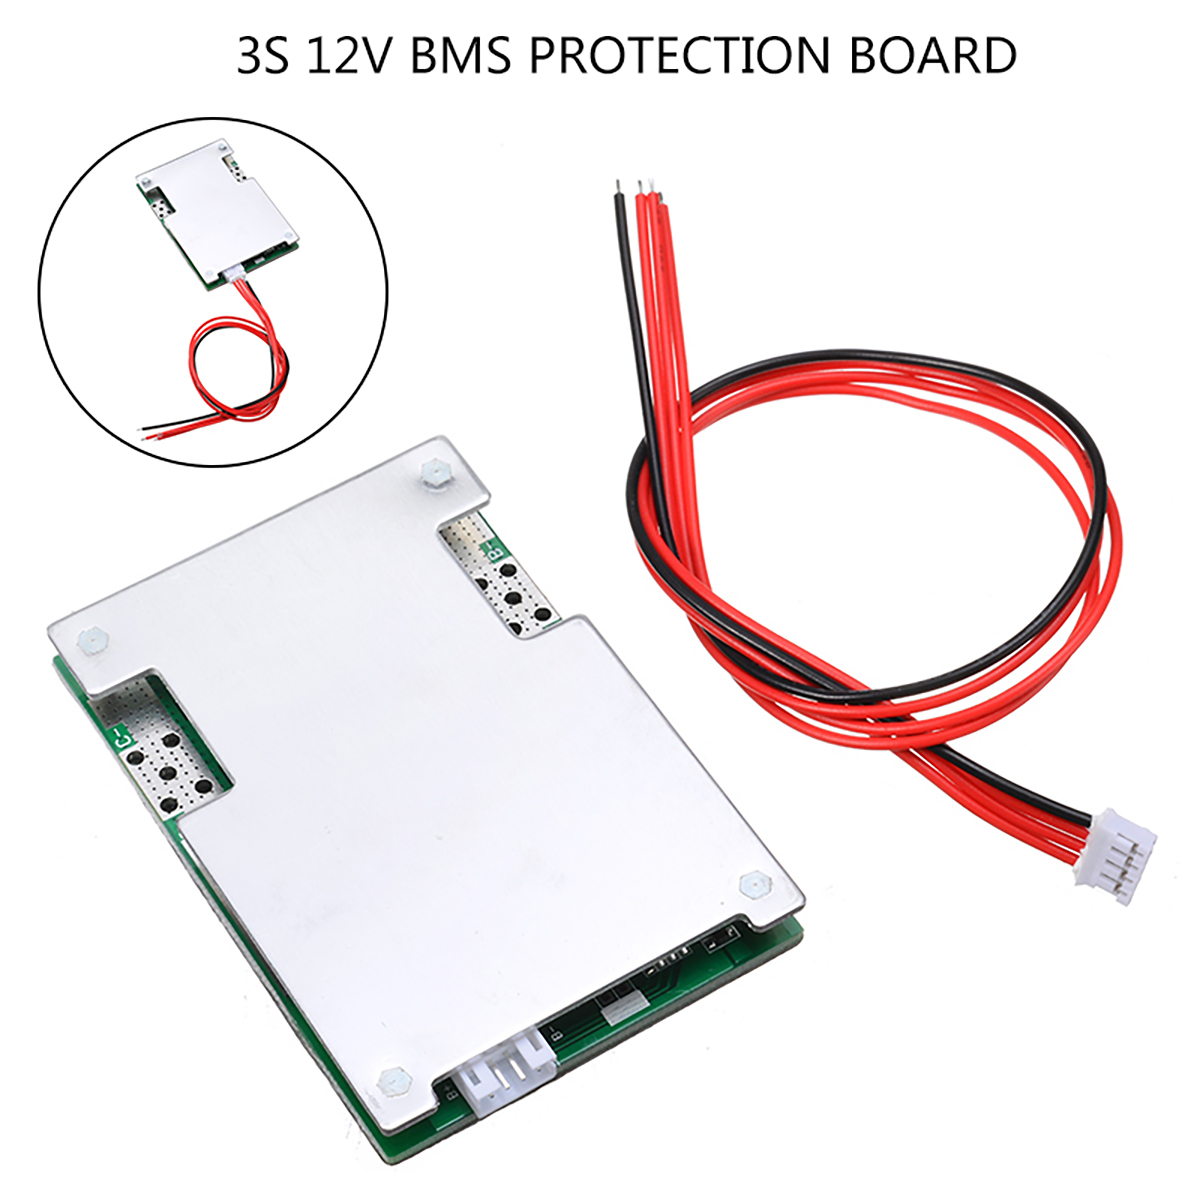 1pc <font><b>3s</b></font>/4s/5s 50A 12V BMS Protection PCB Board For 3 Series Cell Ternary Li-ion Lithium 18650 <font><b>Battery</b></font> <font><b>Packs</b></font> Accessories image